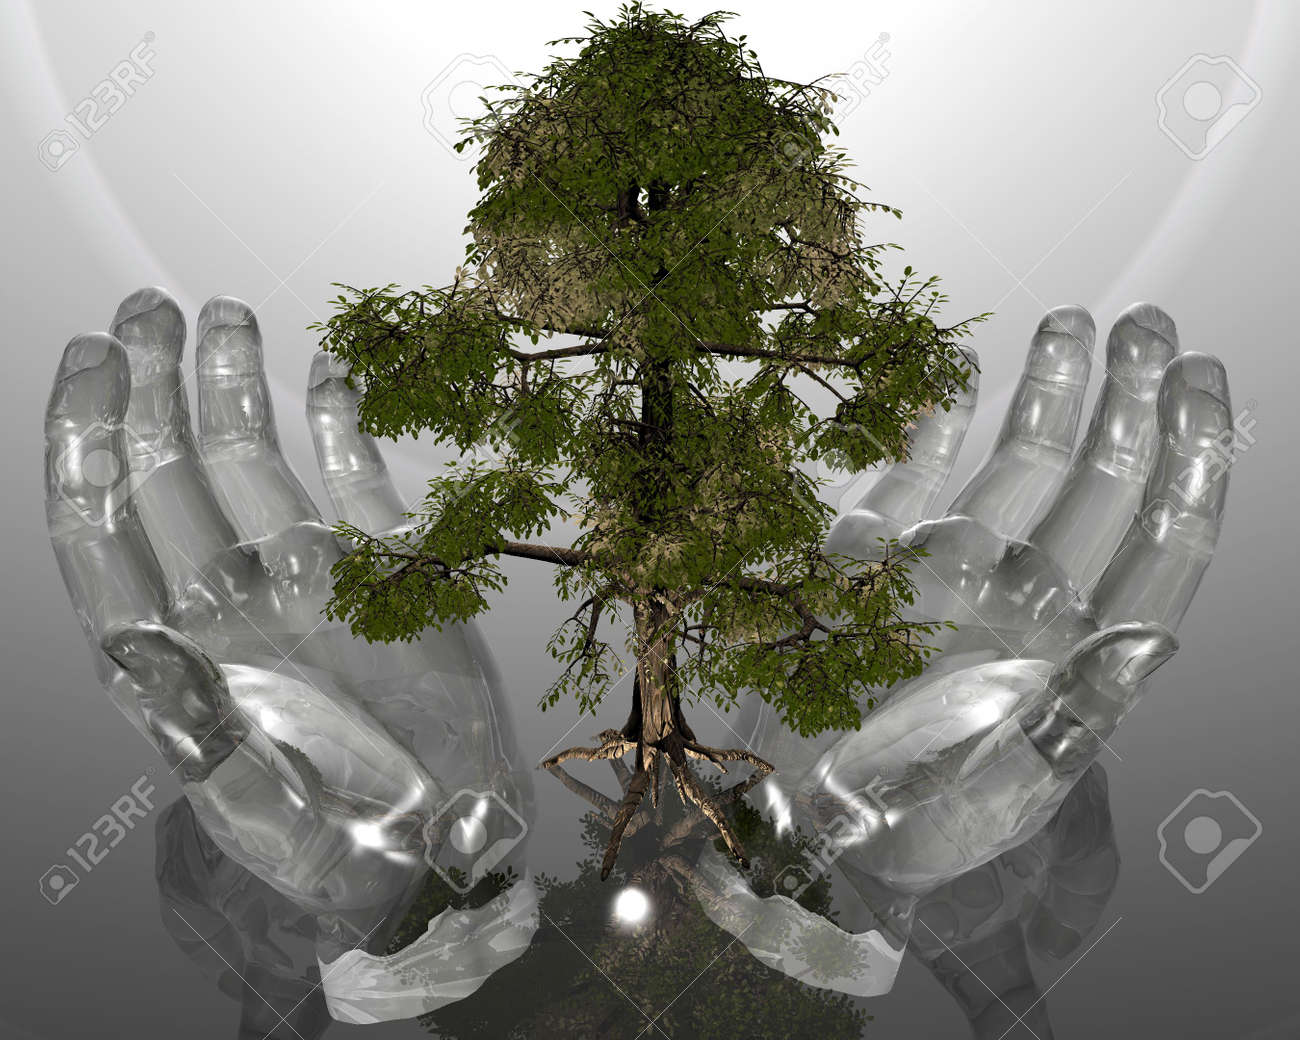 green ecological tree in glass hands on grey background Stock Photo - 3840253